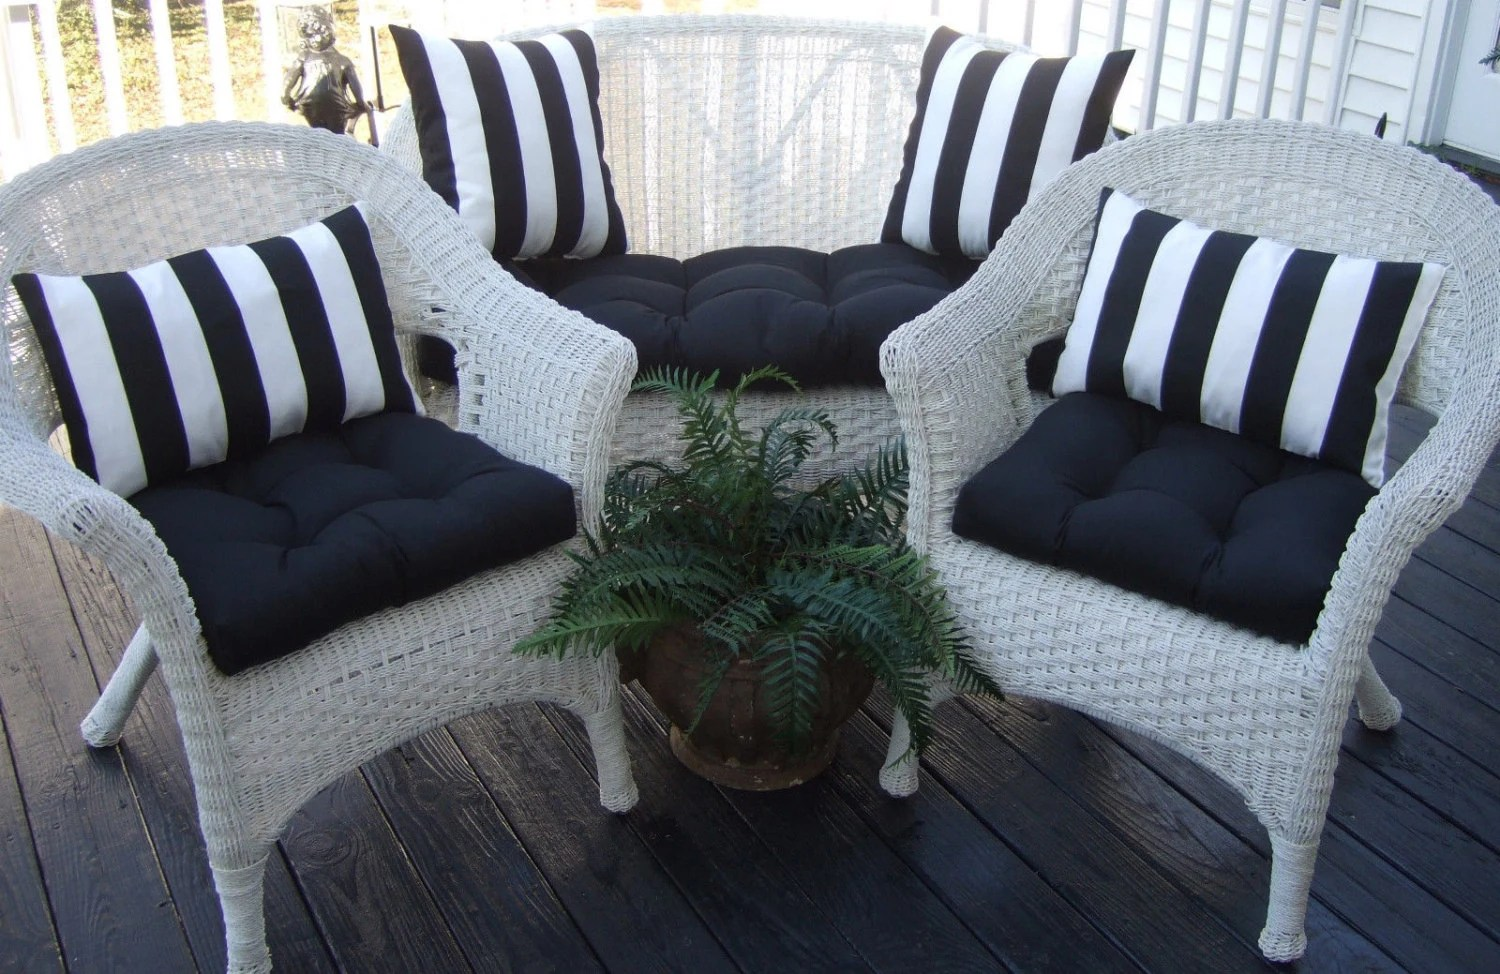 Indoor / Outdoor Wicker Cushion And Pillow 7 Pc Set Solid